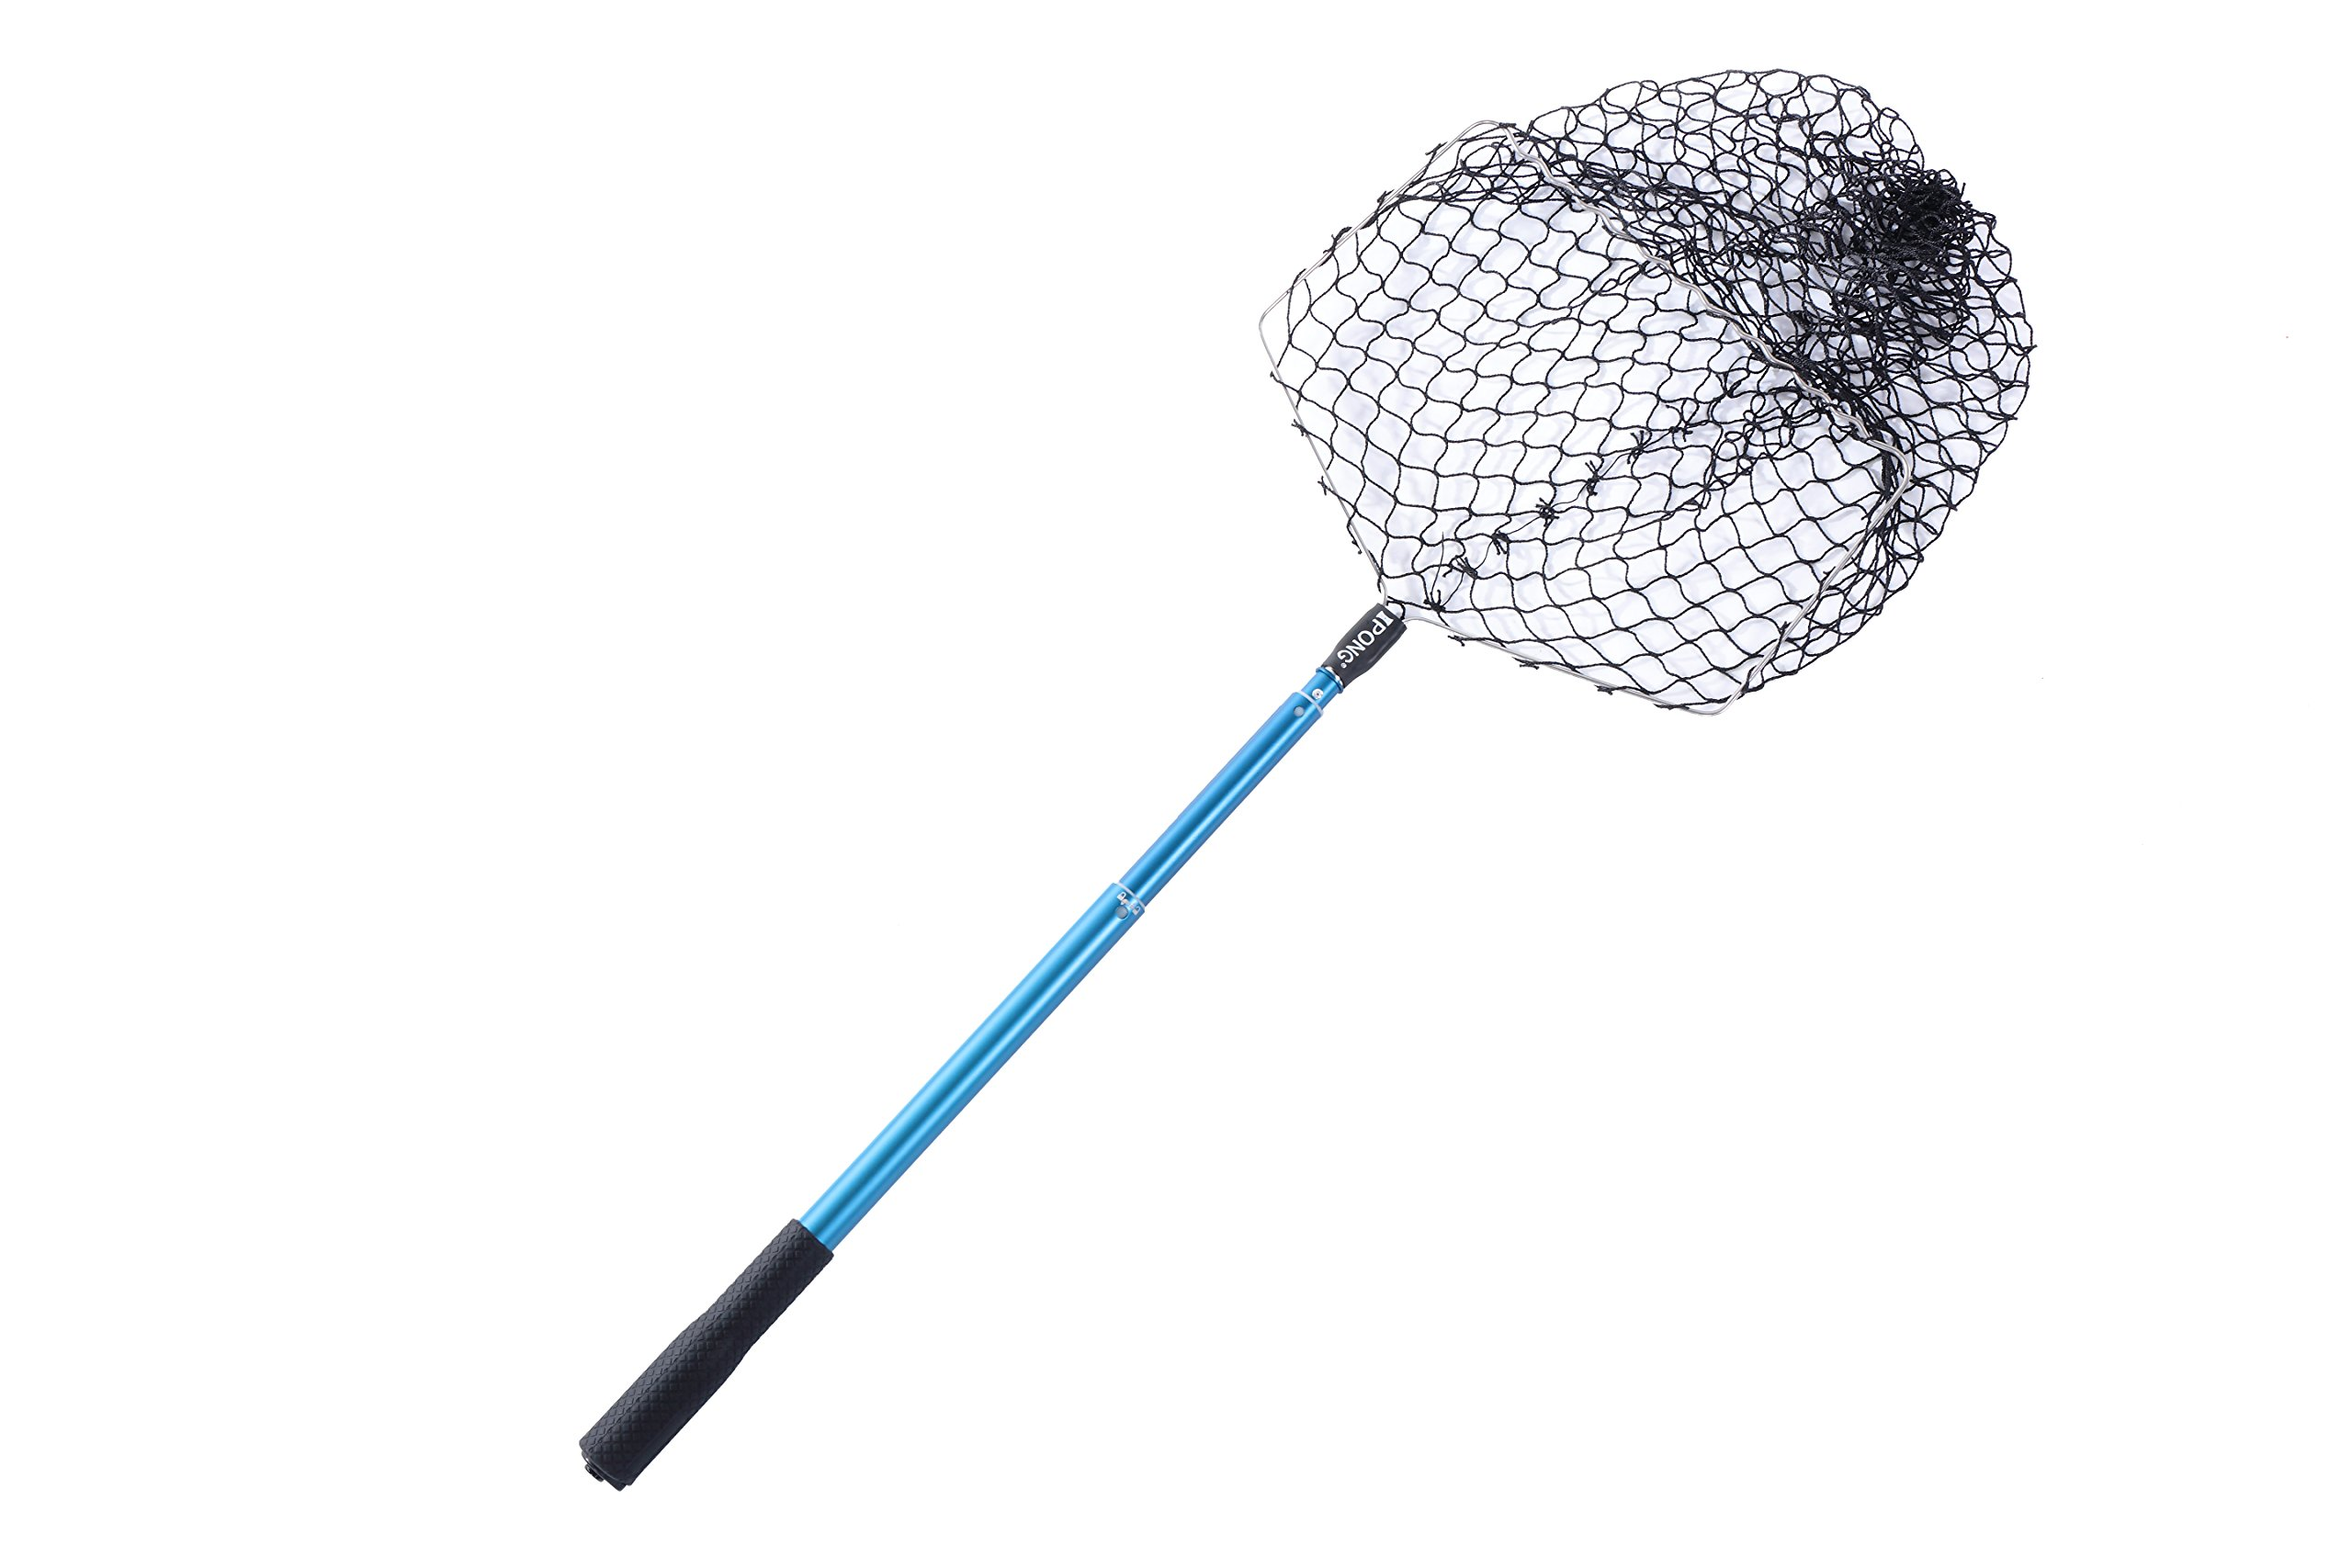 iPong Telescoping Table Tennis Ball Pickup Net - Featuring Ergonomic Design and Increased Holding Capacity